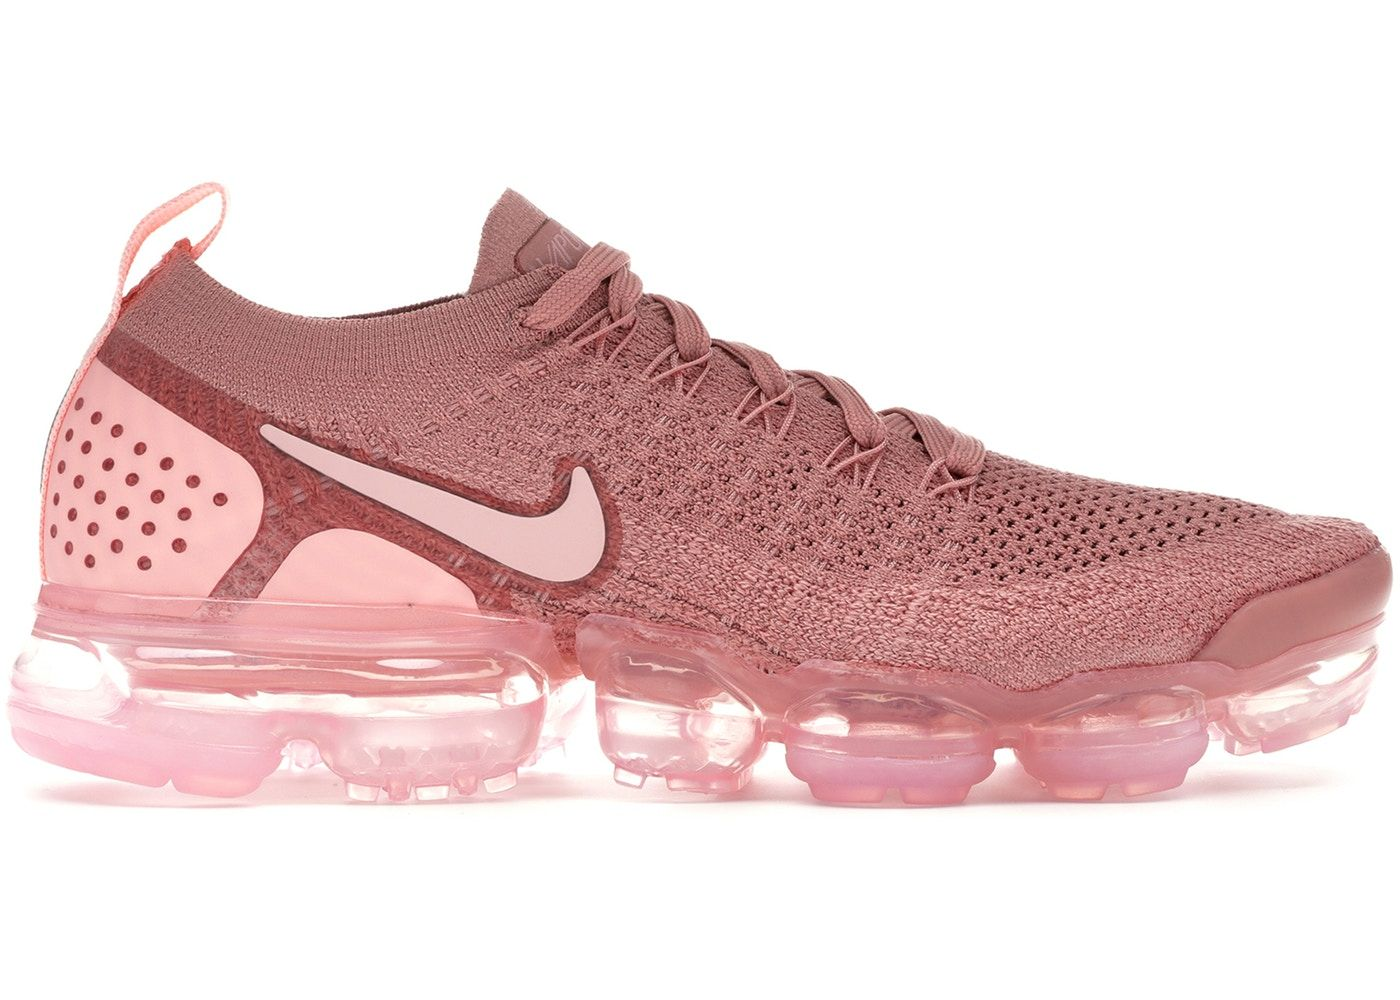 6593922be51e9 Check out the Air VaporMax 2 Rust Pink (W) available on StockX